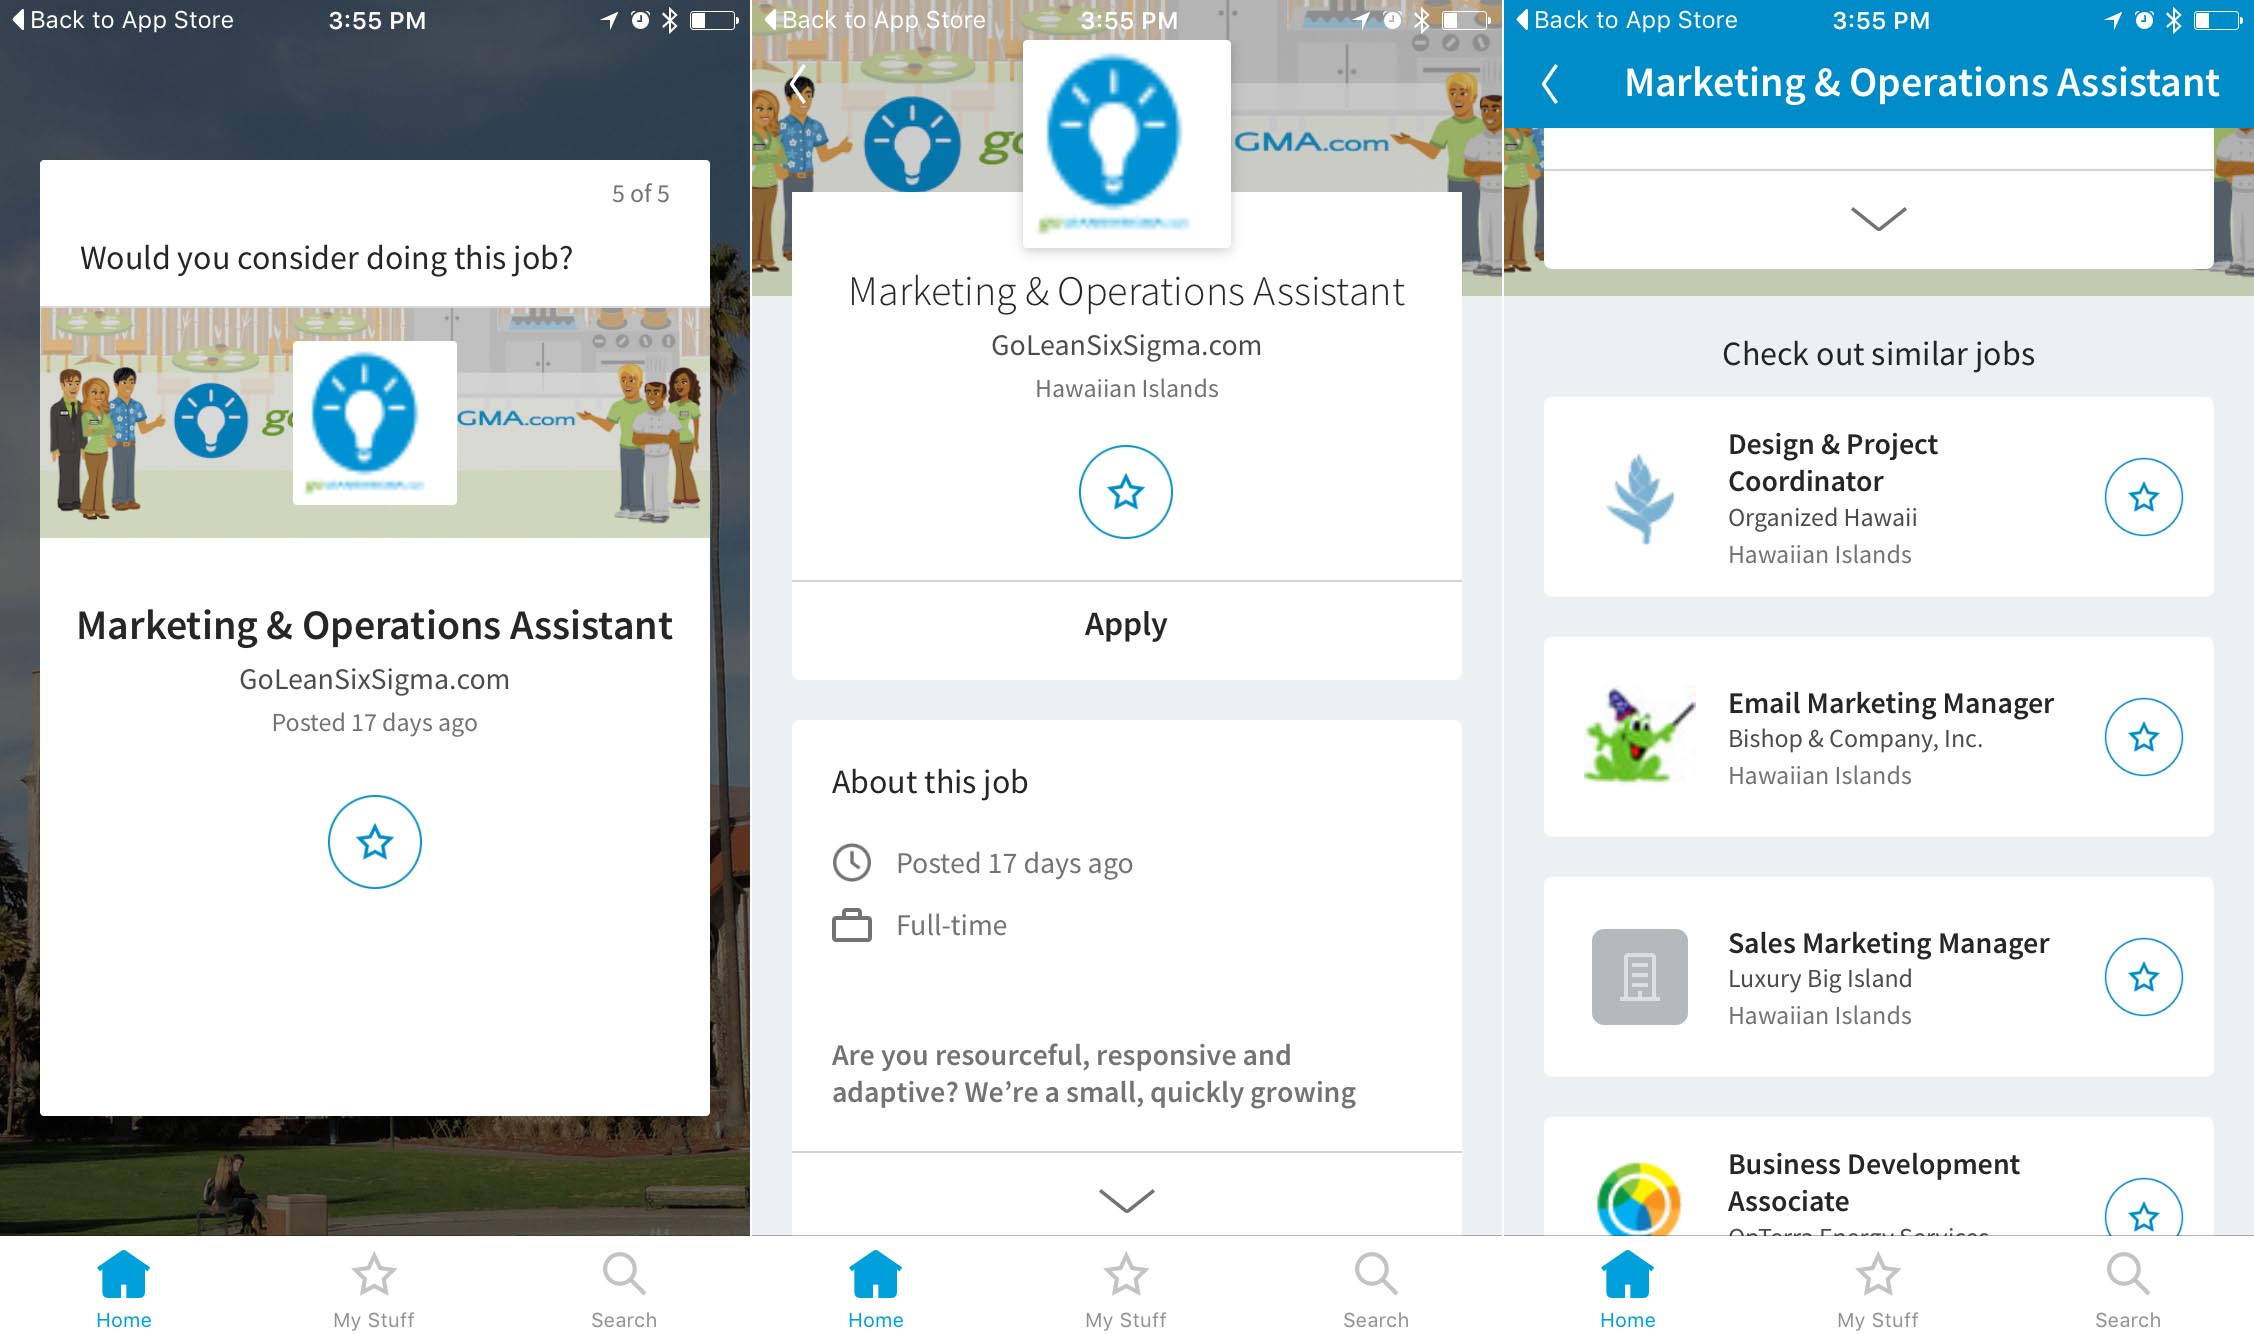 screenshots of linkedins students app showing a job posting you might want to apply - Linkedin Jobs Search Finding Jobs Using Linkedin